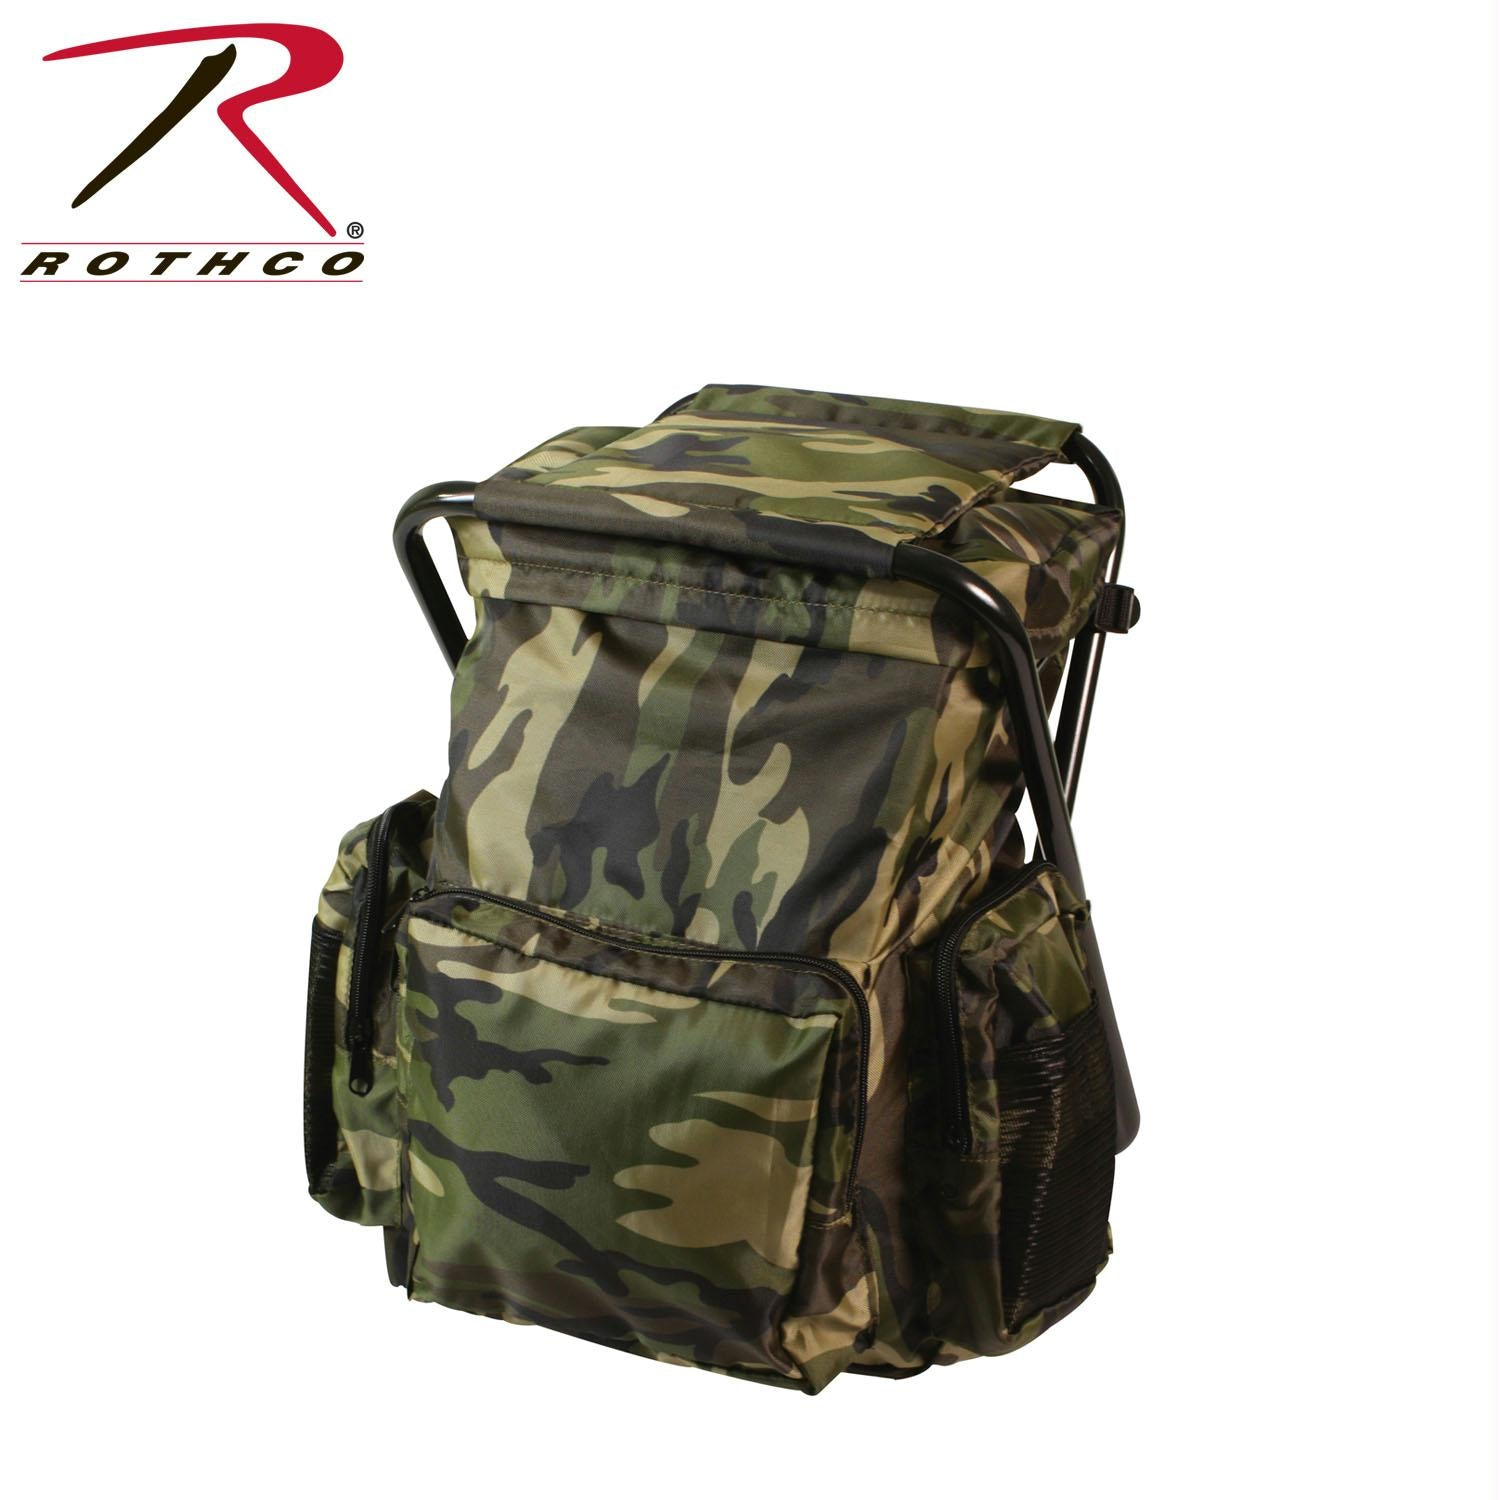 Rothco Backpack and Stool Combo Pack - Woodland Camo